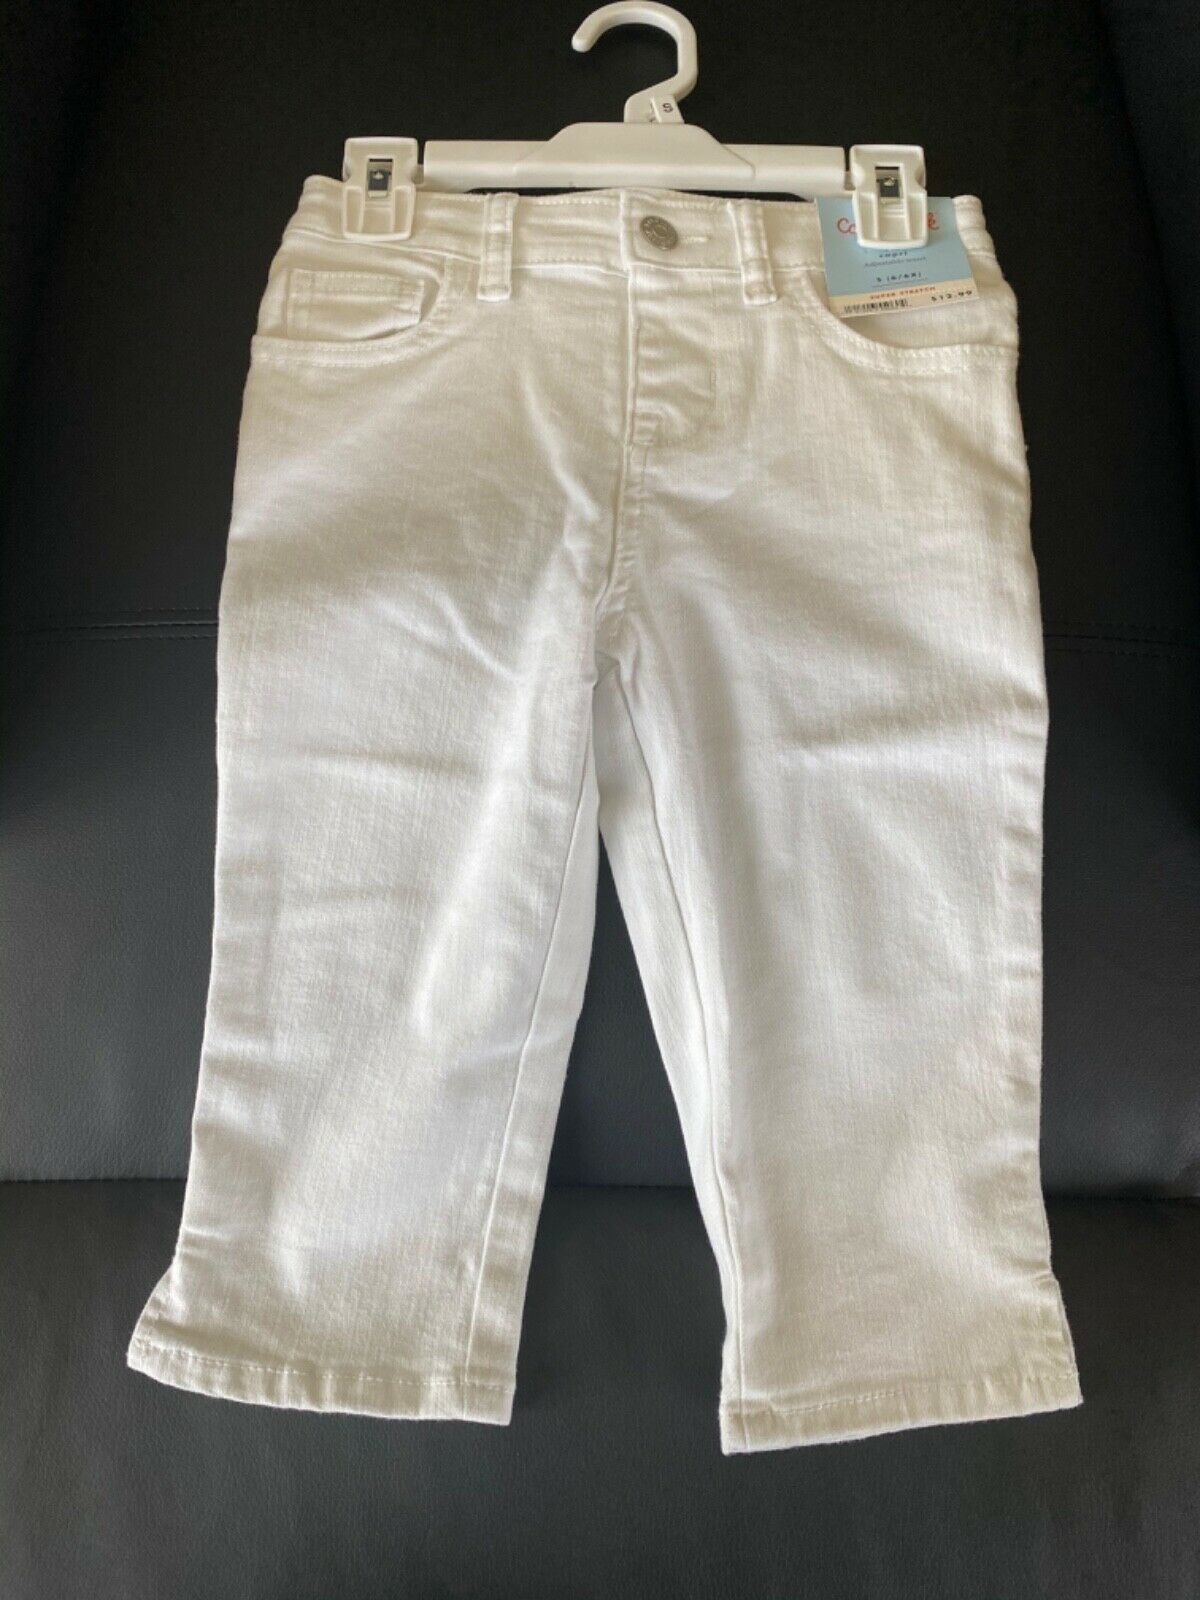 Primary image for Cat and Jack Super Stretch White Capri Pants Kids Small 6/6X NWT